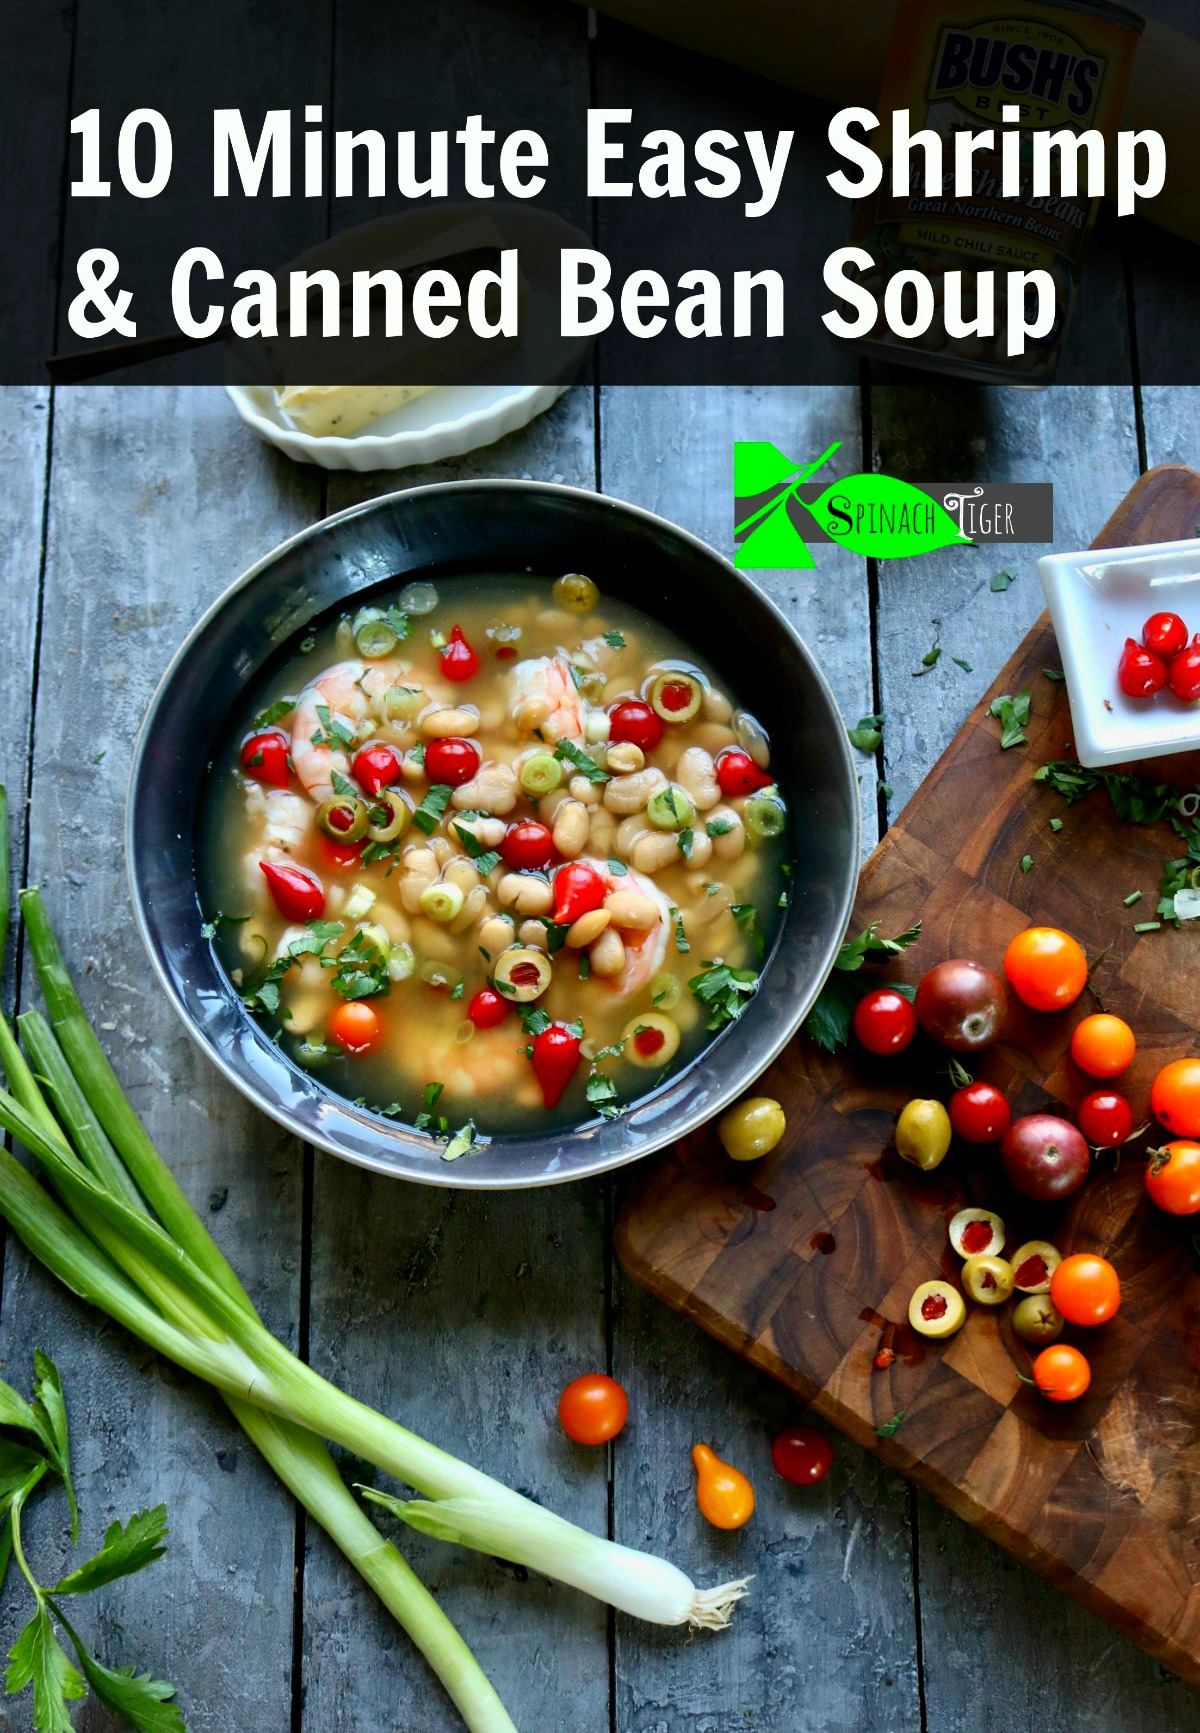 Easy Shrimp White Bean Soup Made in Ten Minutes from Spinach Tiger #cannedbeansrecipe #beansrecipe #shrimpwhitebeansoup #whitebeansoup